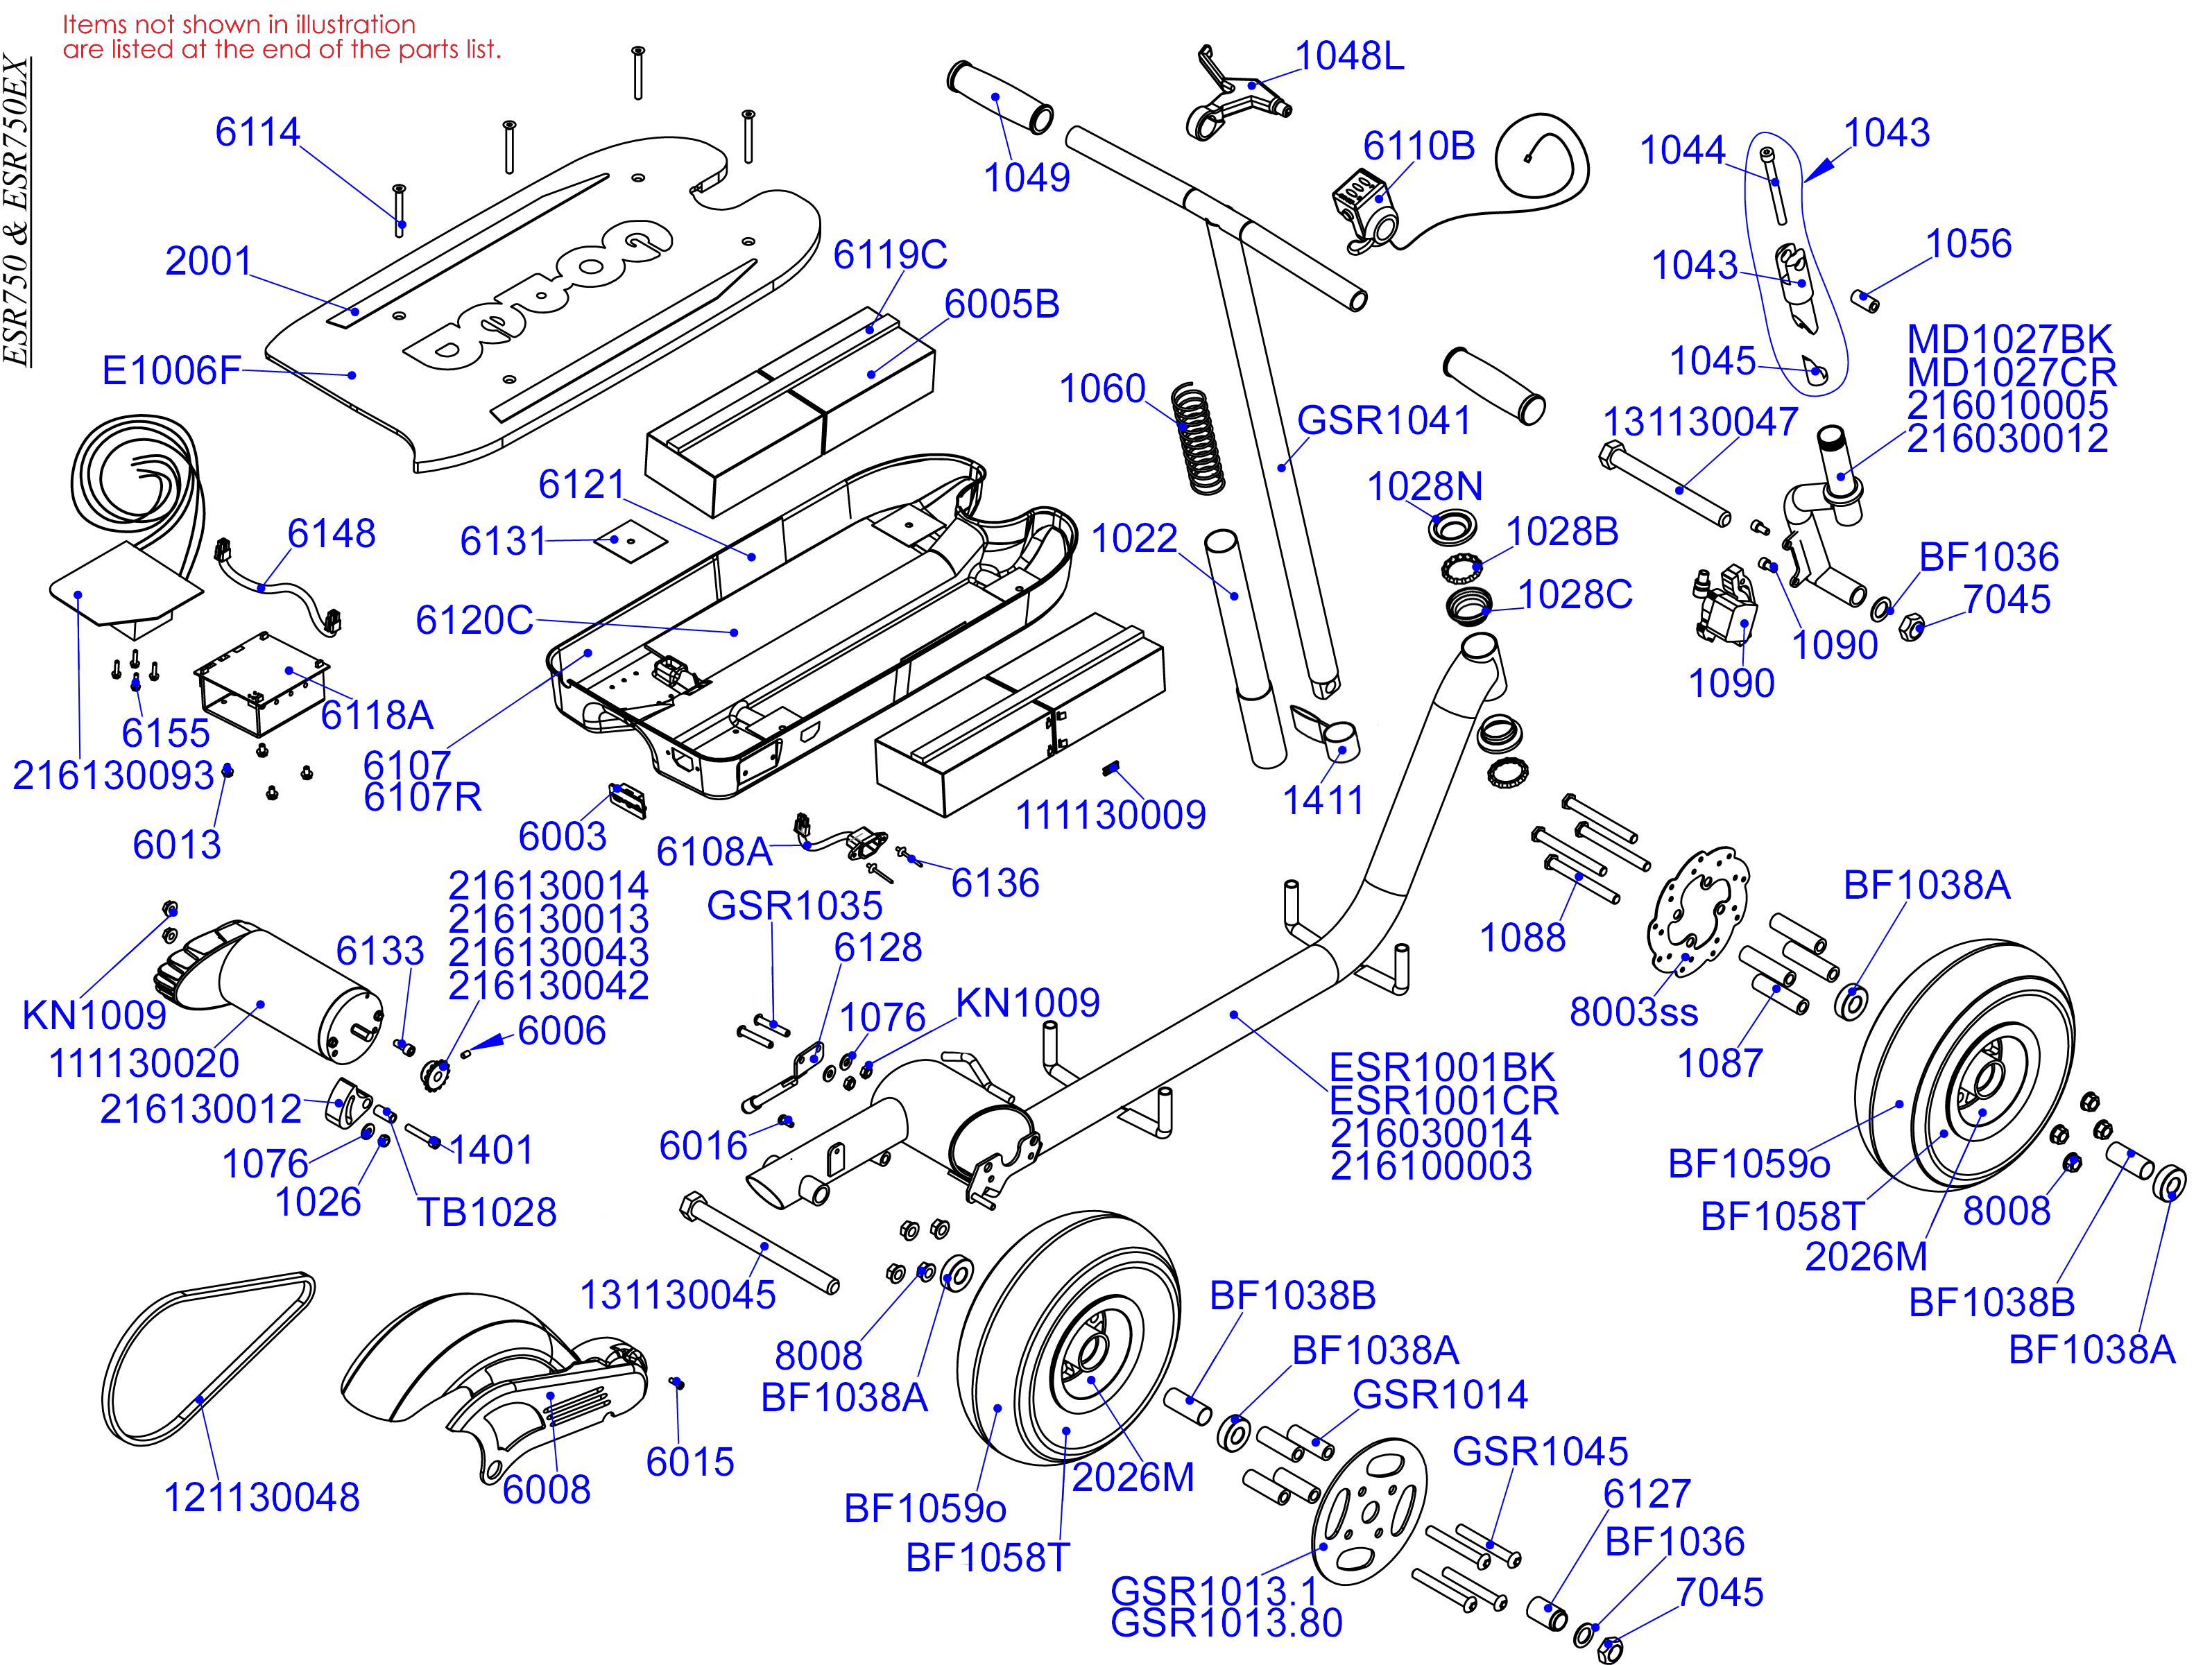 newesr750?t=1433273469 parts electric scooter parts esr 750 www goped com Electric Motor Wiring Diagram at edmiracle.co